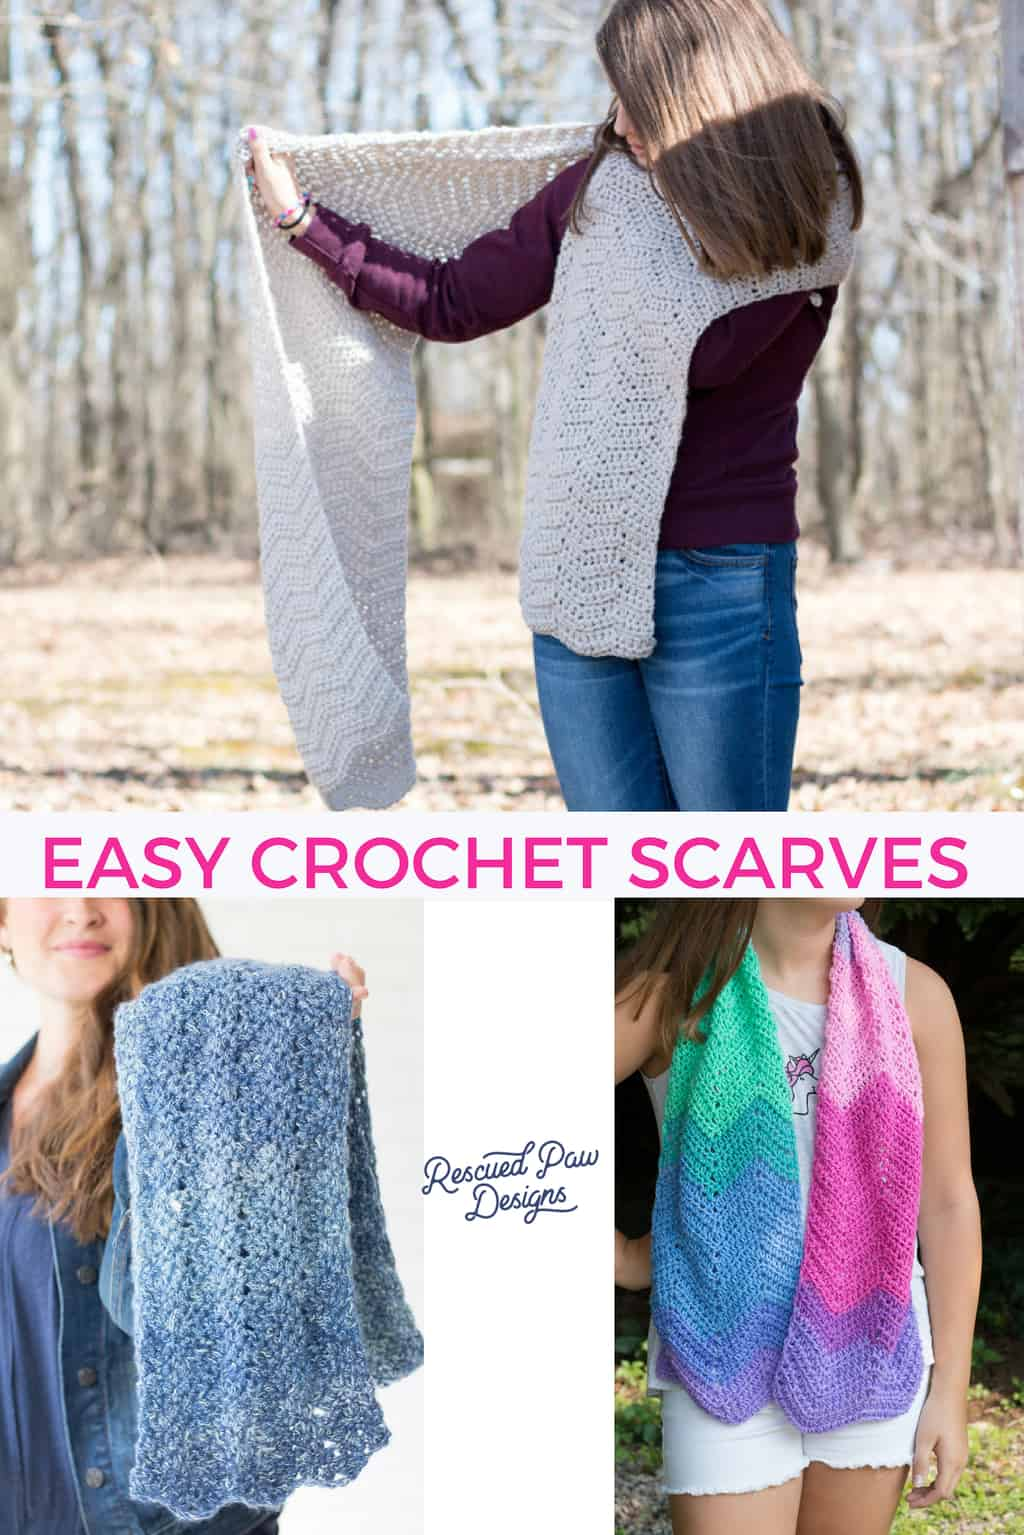 5 Free Quick And Easy Crochet Scarf Patterns Rescued Paw Designs